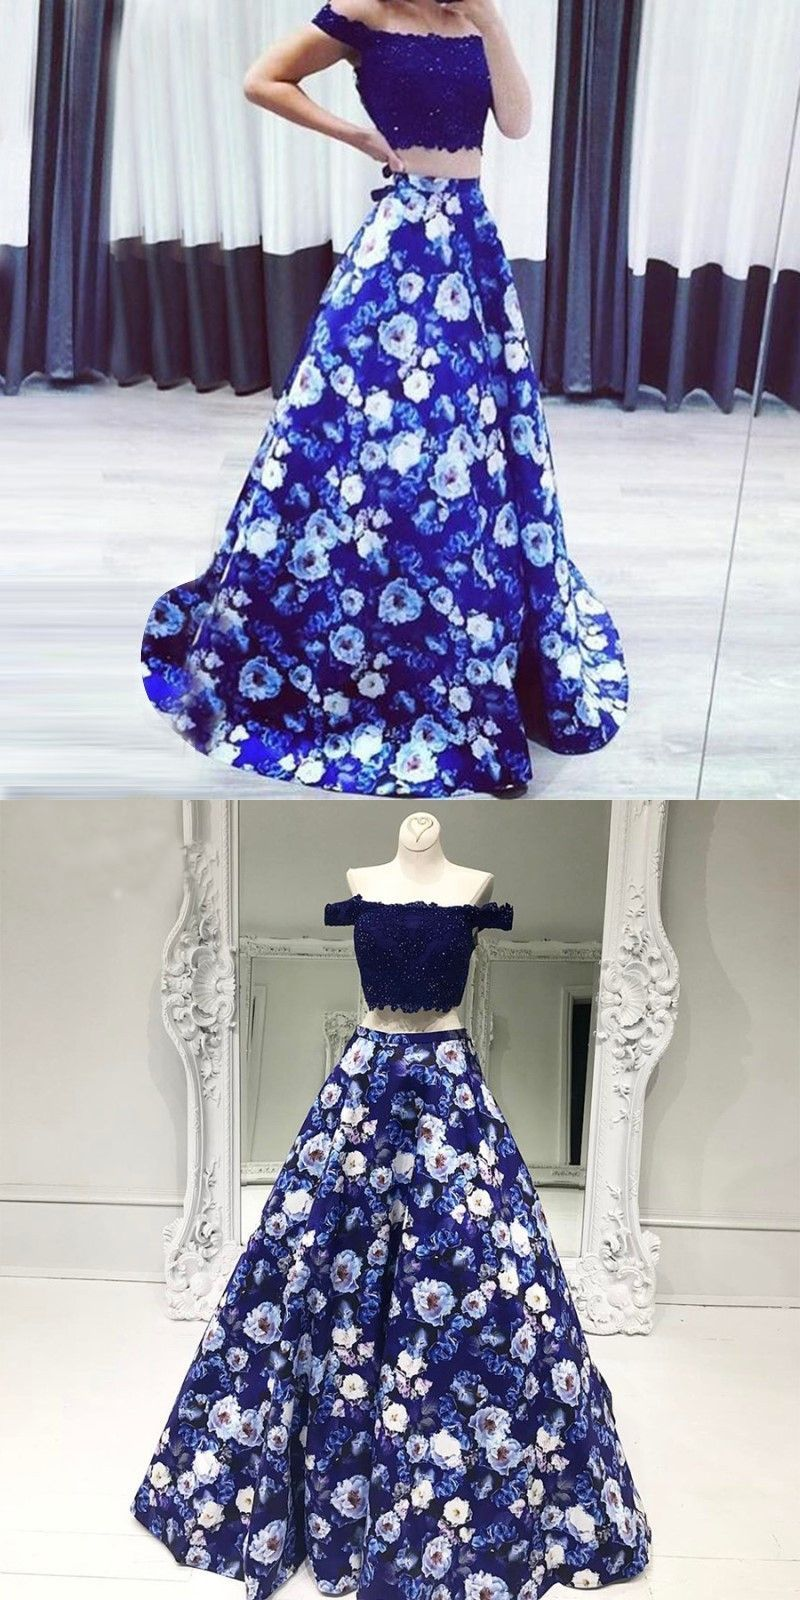 Off The Shoulder Two Piece Mermaid Long Prom Dress Long Evening Gown With Printed Flower Skirt Floral Prom Dresses Blue Satin Prom Dress Floral Evening Gown [ 1600 x 800 Pixel ]